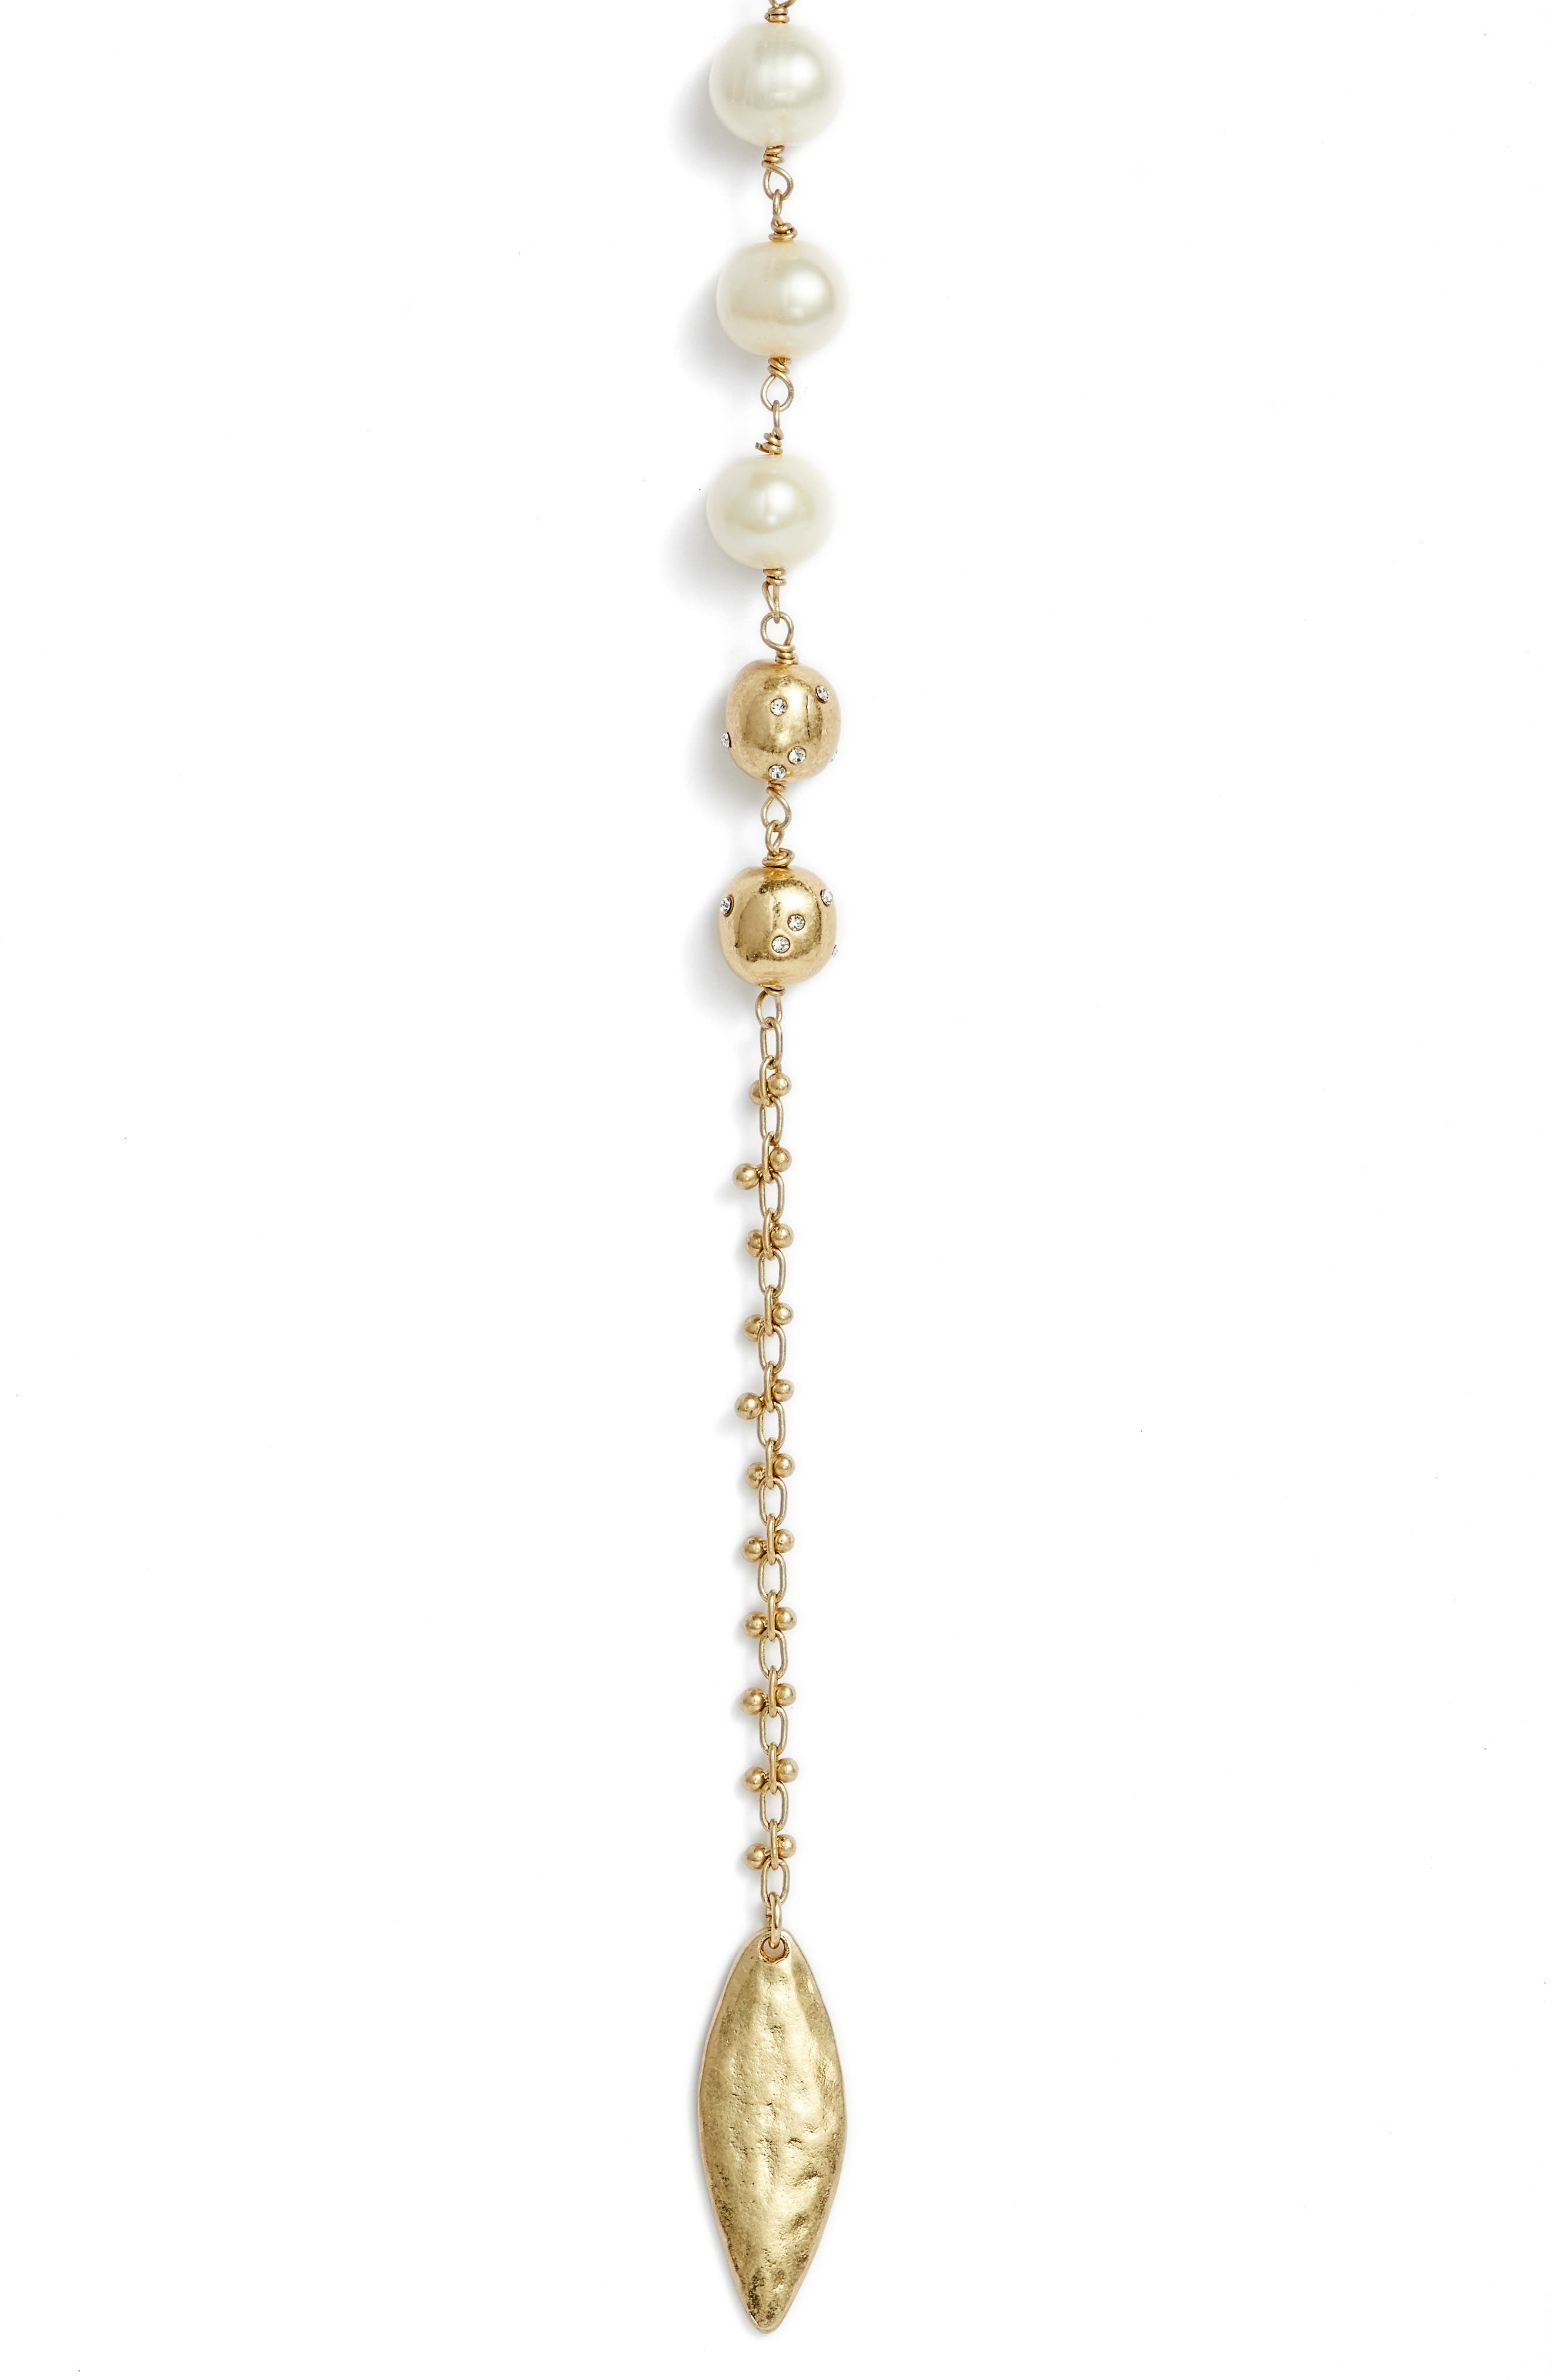 Freshwater Pearl Y-Shape Necklace,                             Alternate thumbnail 2, color,                             White- Gold